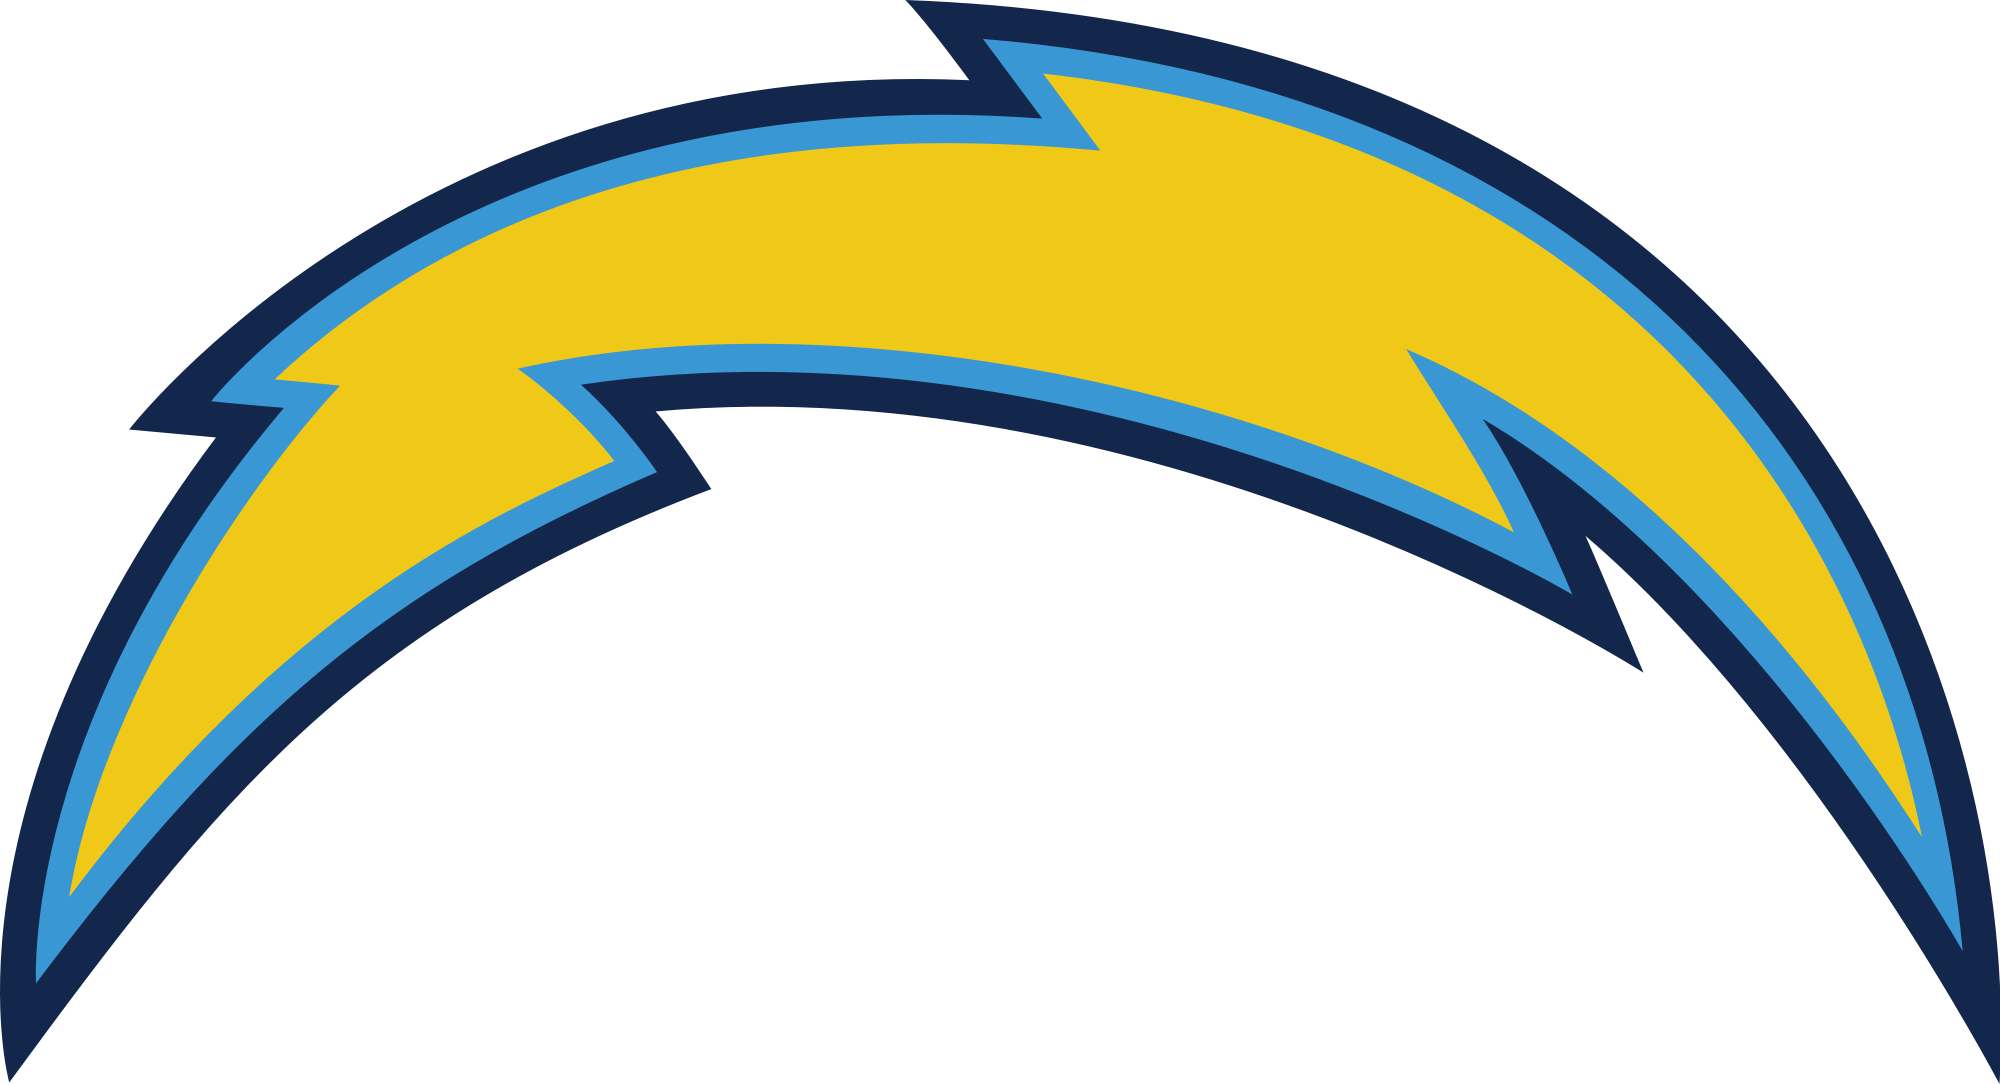 San Diego Chargers Nfl Football Wallpaper 2000x1084